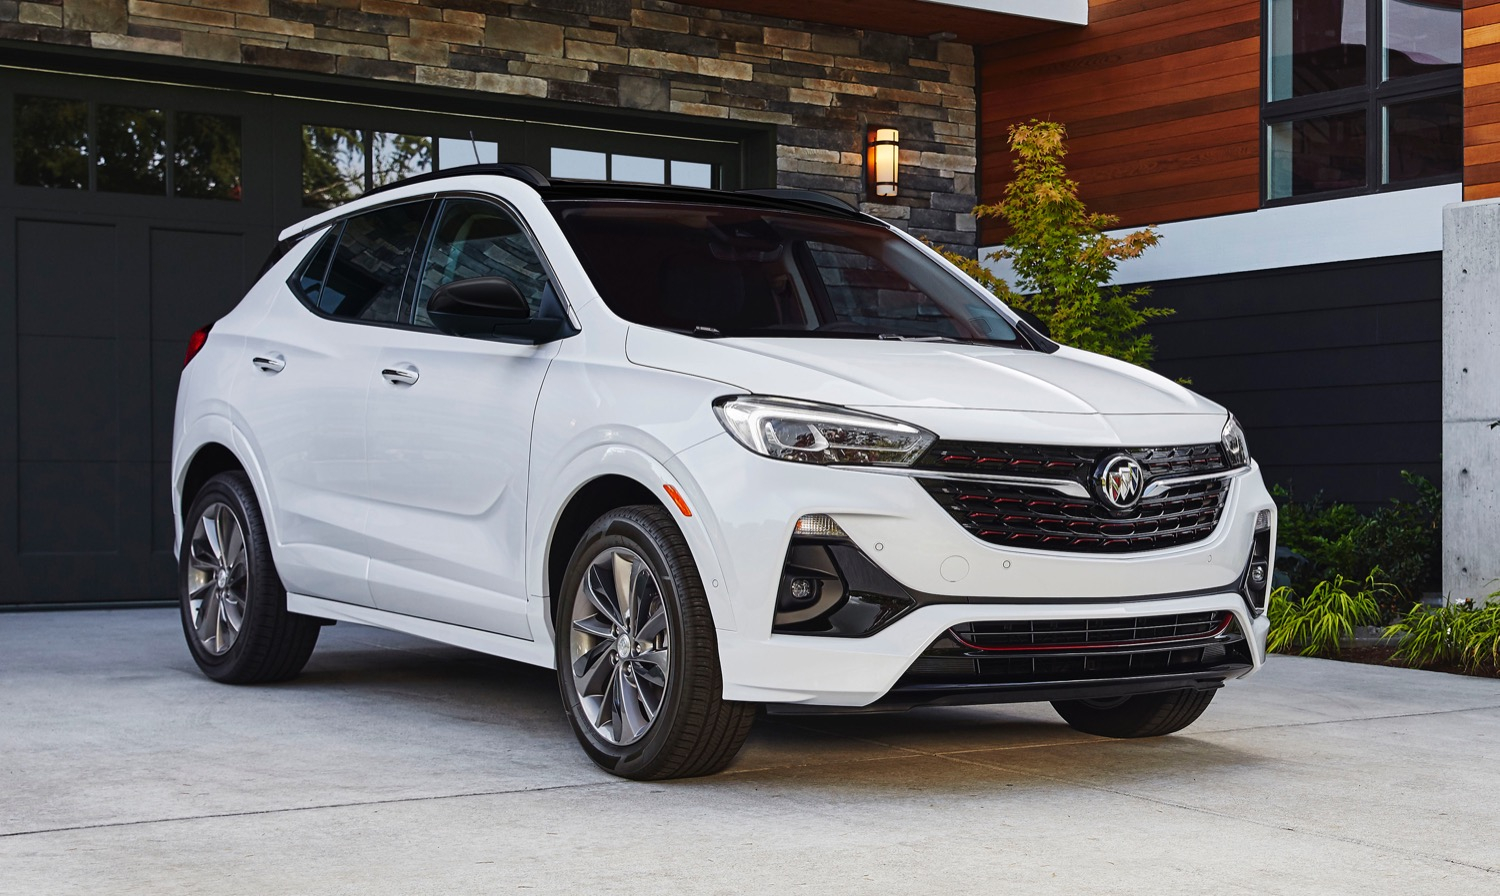 Buick Encore Gx Discount Offers Cash In February 2020 | Gm 2022 Buick Encore Lease Specials, Trim Levels, Mpg